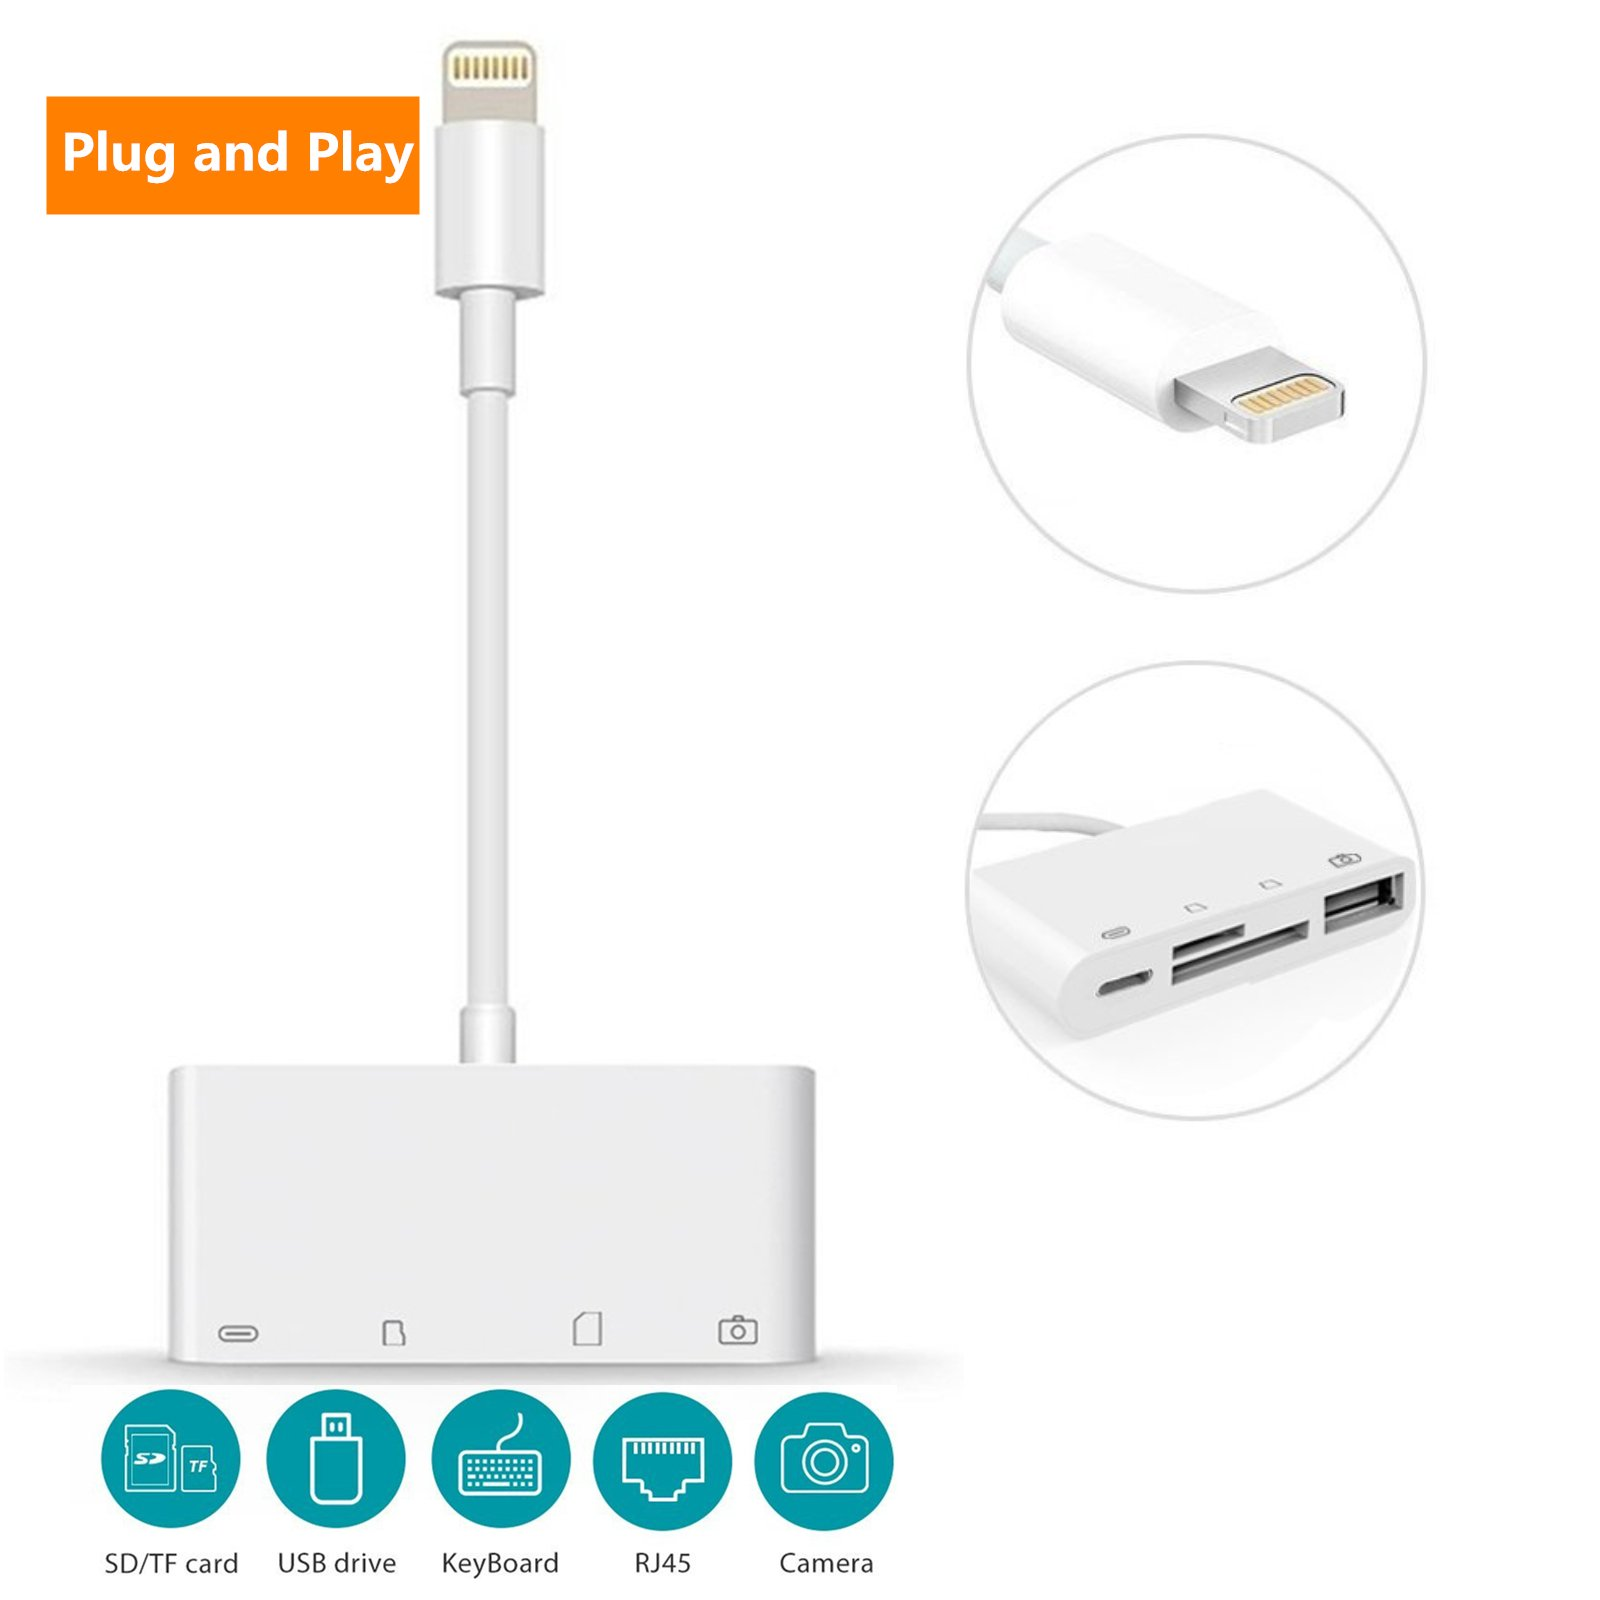 SD Card Reader, Digital Camera Reader Adapter Cable, Lightning to USB Camera Adapter, SD/TF Card Reader, Trail Game Camera Viewer for iPhone/iPad, No App Required, Plug and Play (A) by Queenwing (Image #1)